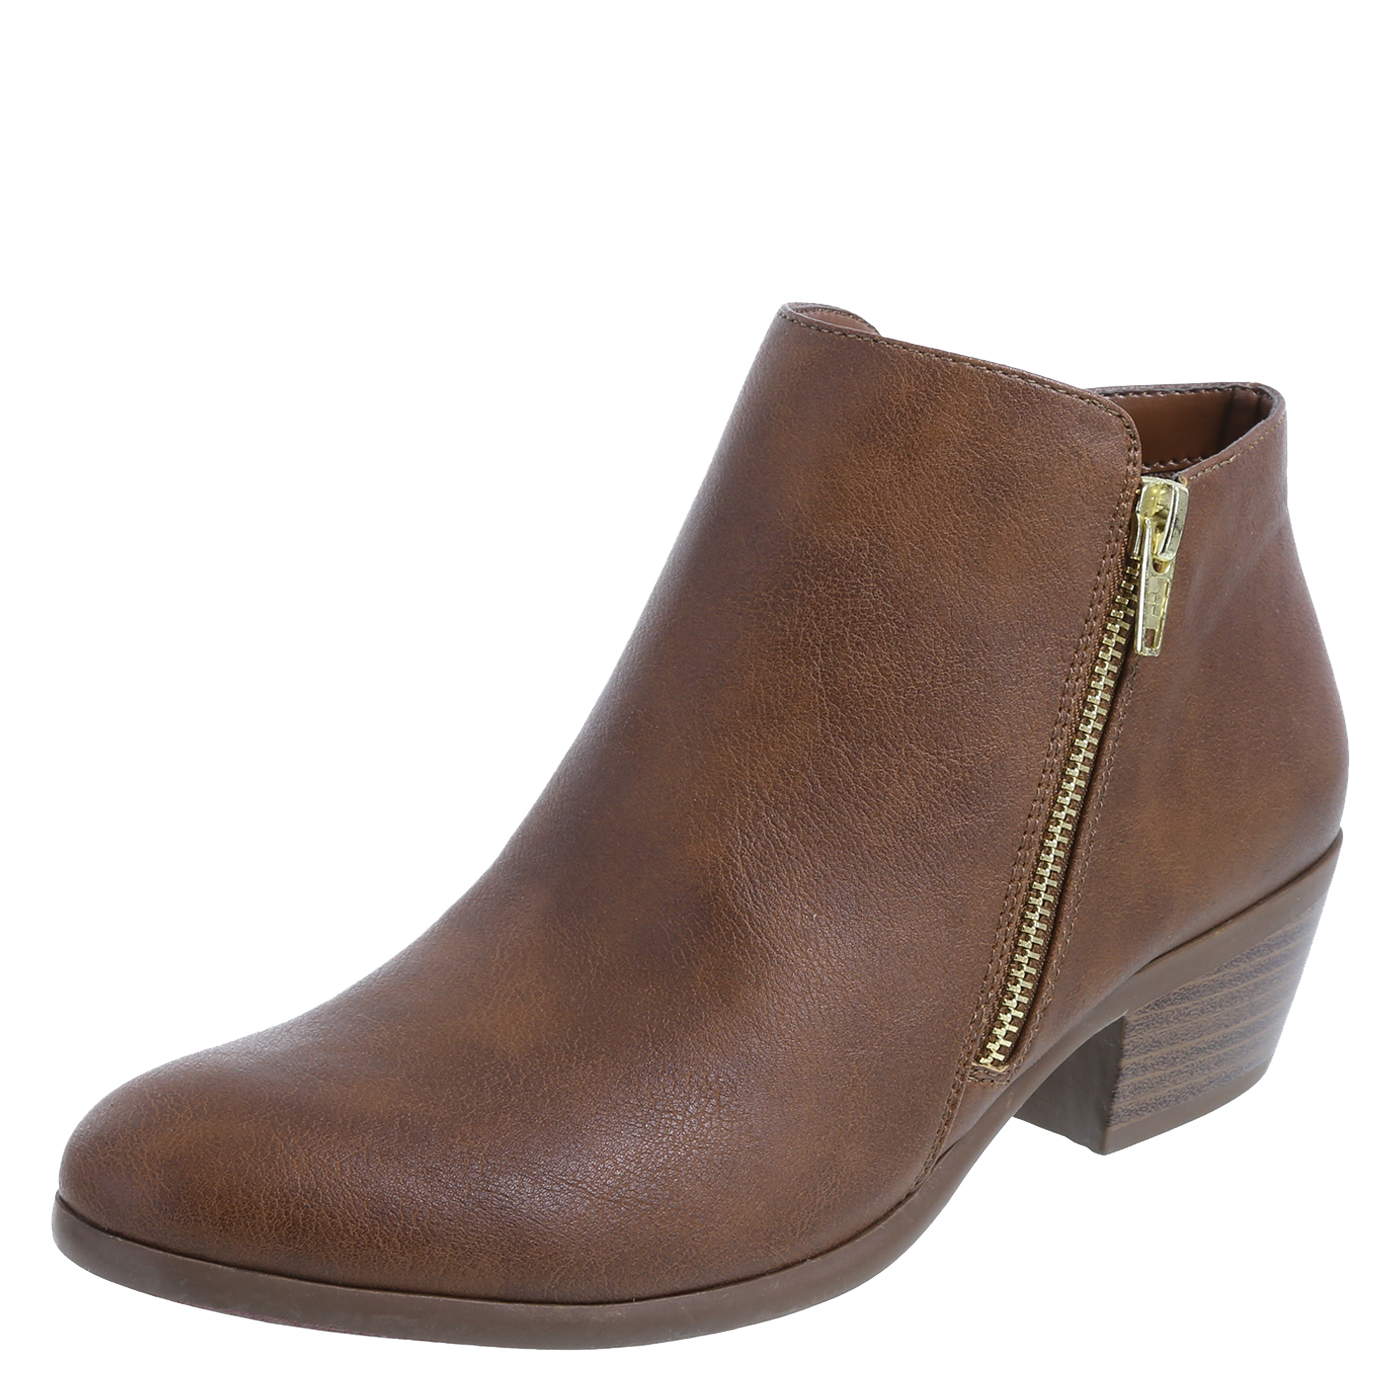 womens ankle boots womenu0027s savvy zip ankle bootwomenu0027s savvy zip ankle boot, cognac FPCBOGR